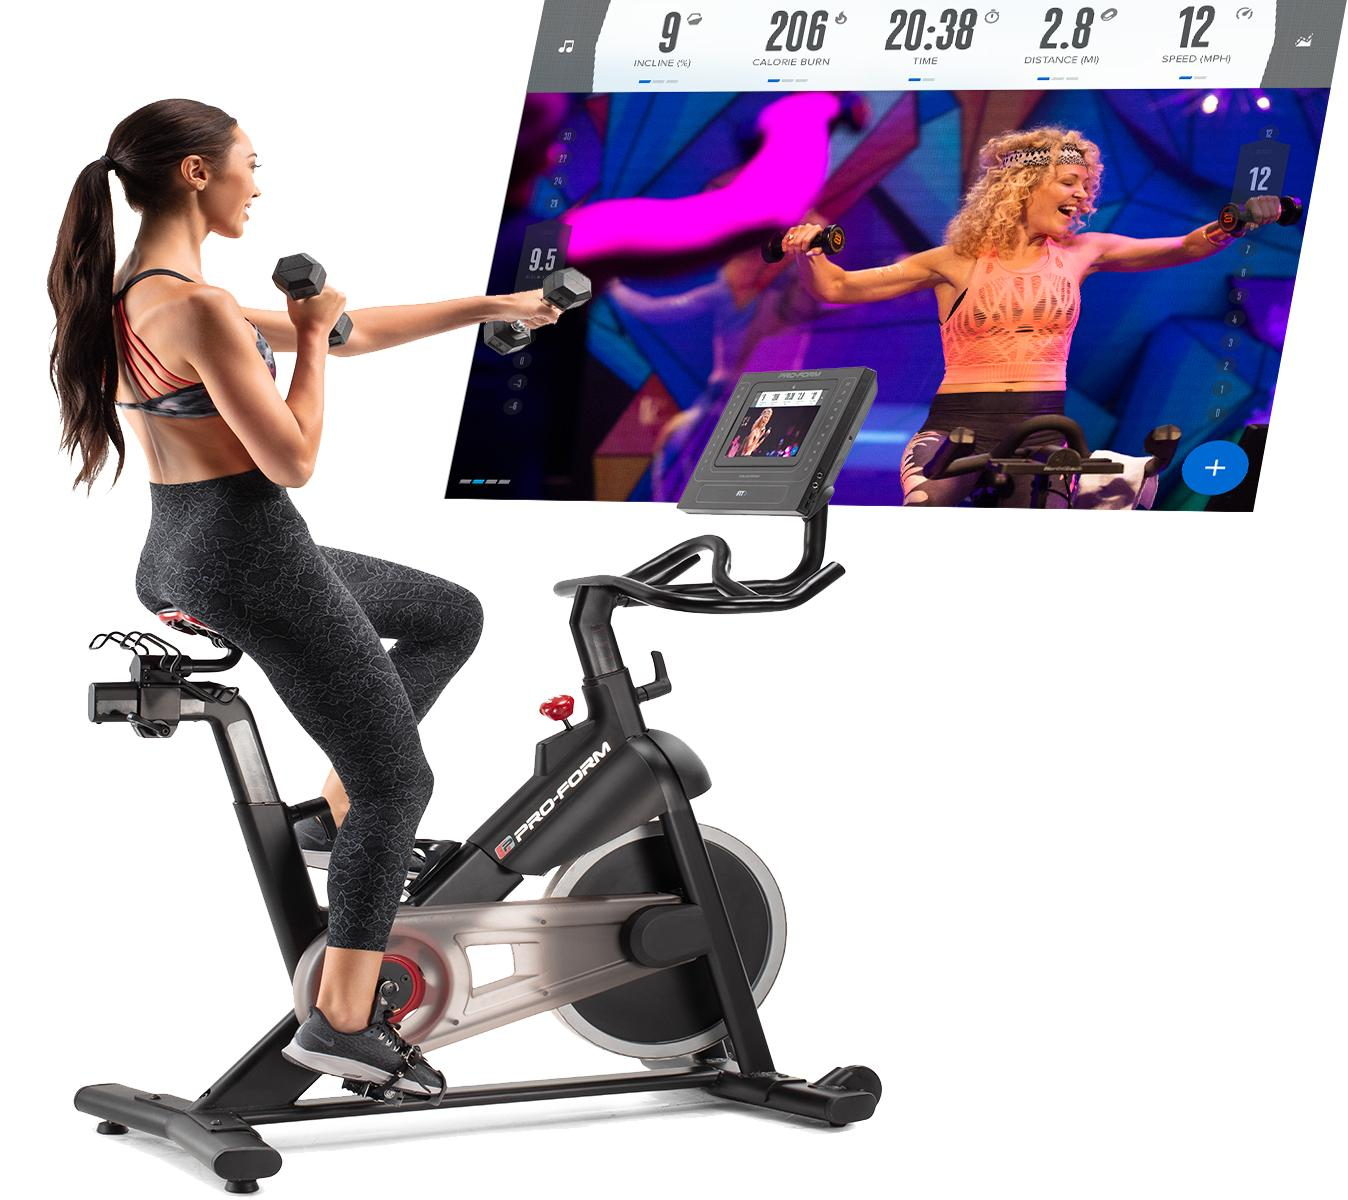 The Proform Studio Bike Pro  comes with a set of 3 lb weights for off and on the bike cross-fit training classes streamed directly to your touchscreen